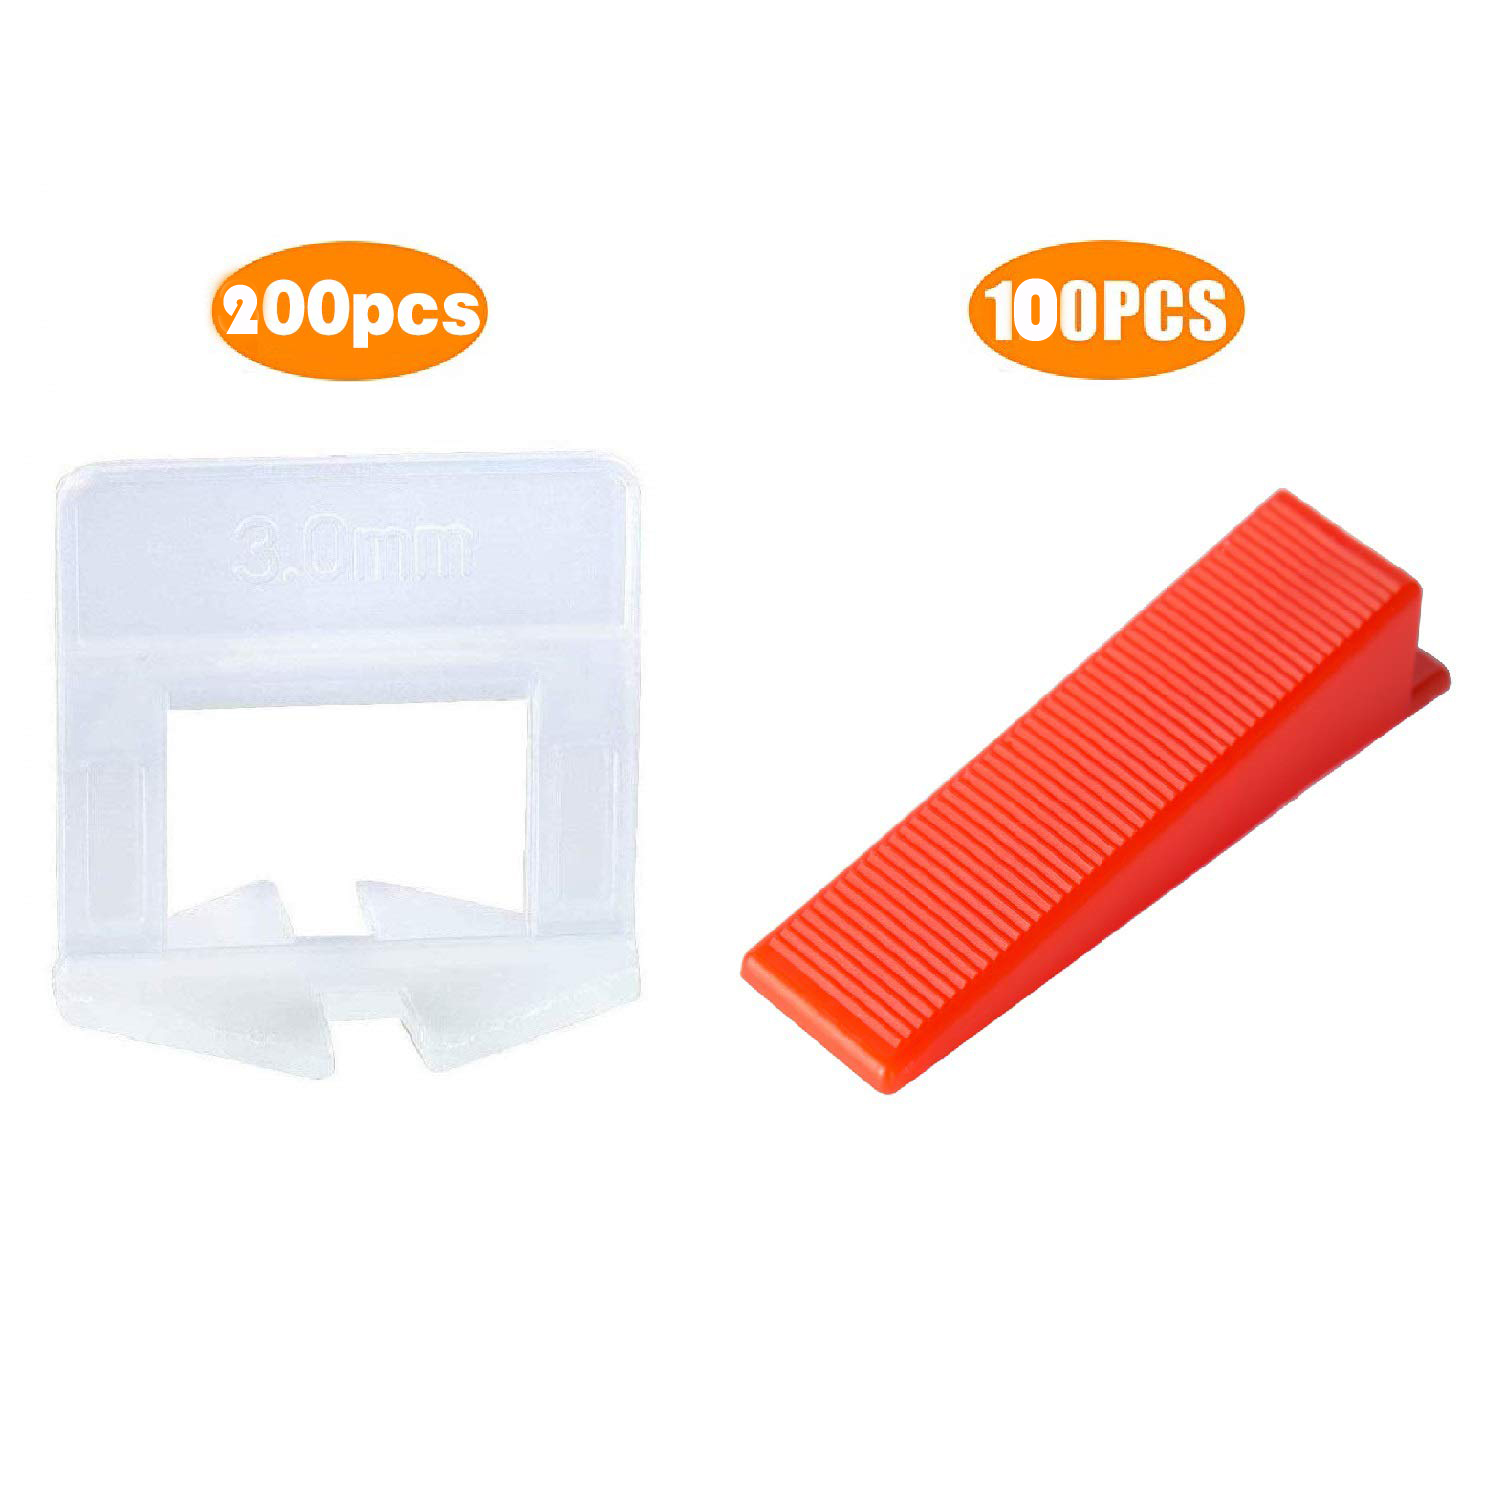 300pcs Plastic Ceramic Tile Leveling System 200 Clips+100 Wedges Tiling Flooring Tools Wedges Clips 2mm